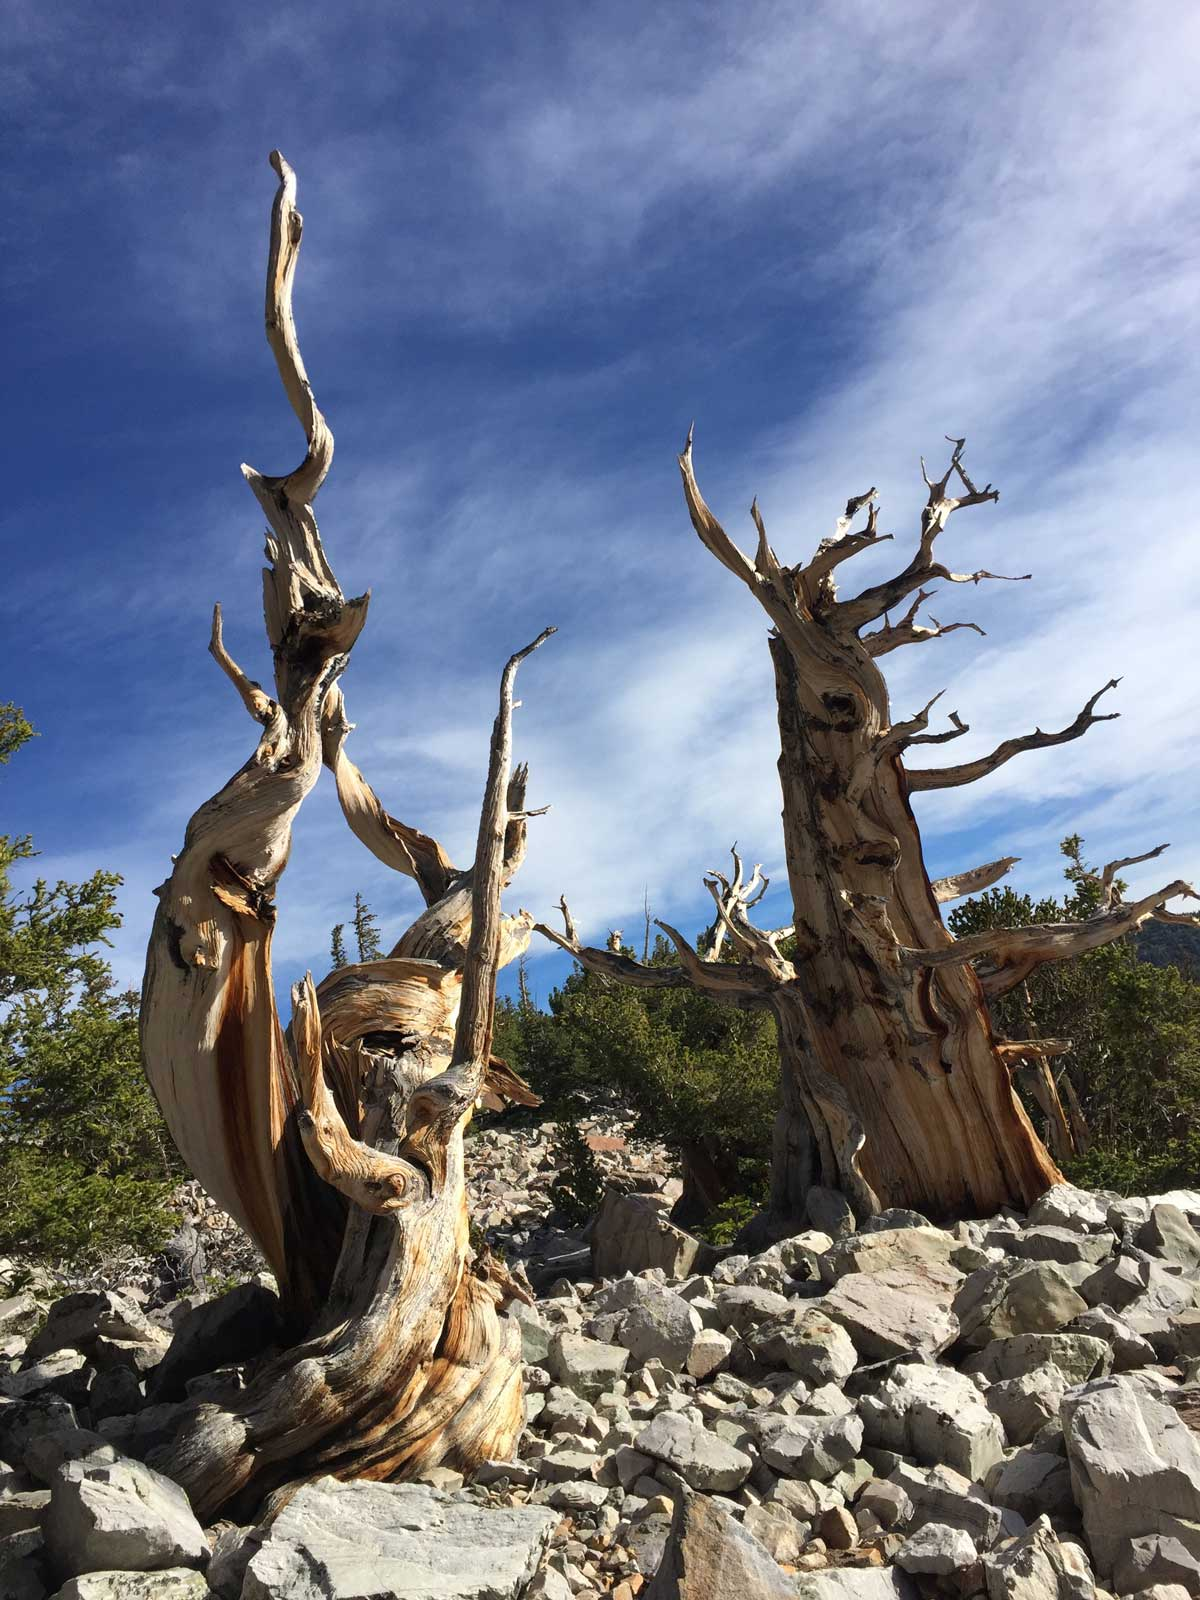 Bristlecone Pine at the Great Basin National Park